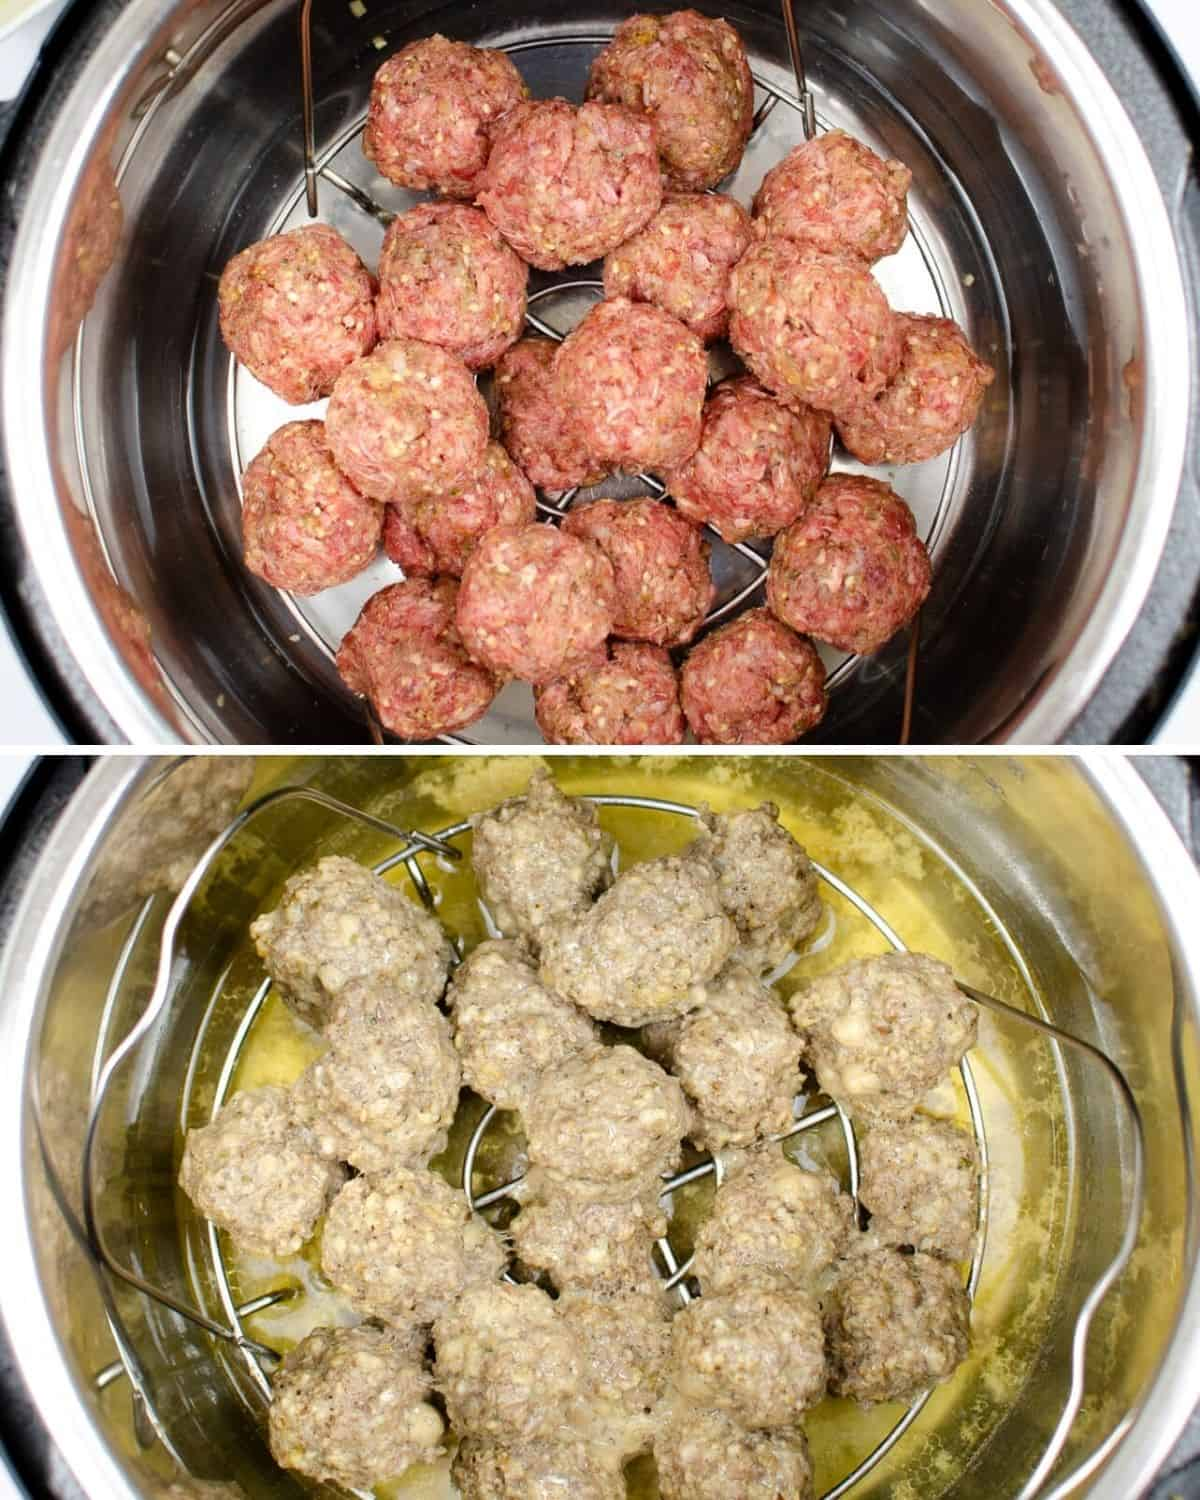 Meatballs in an Instant Pot and another photo of the meatballs after being cooked